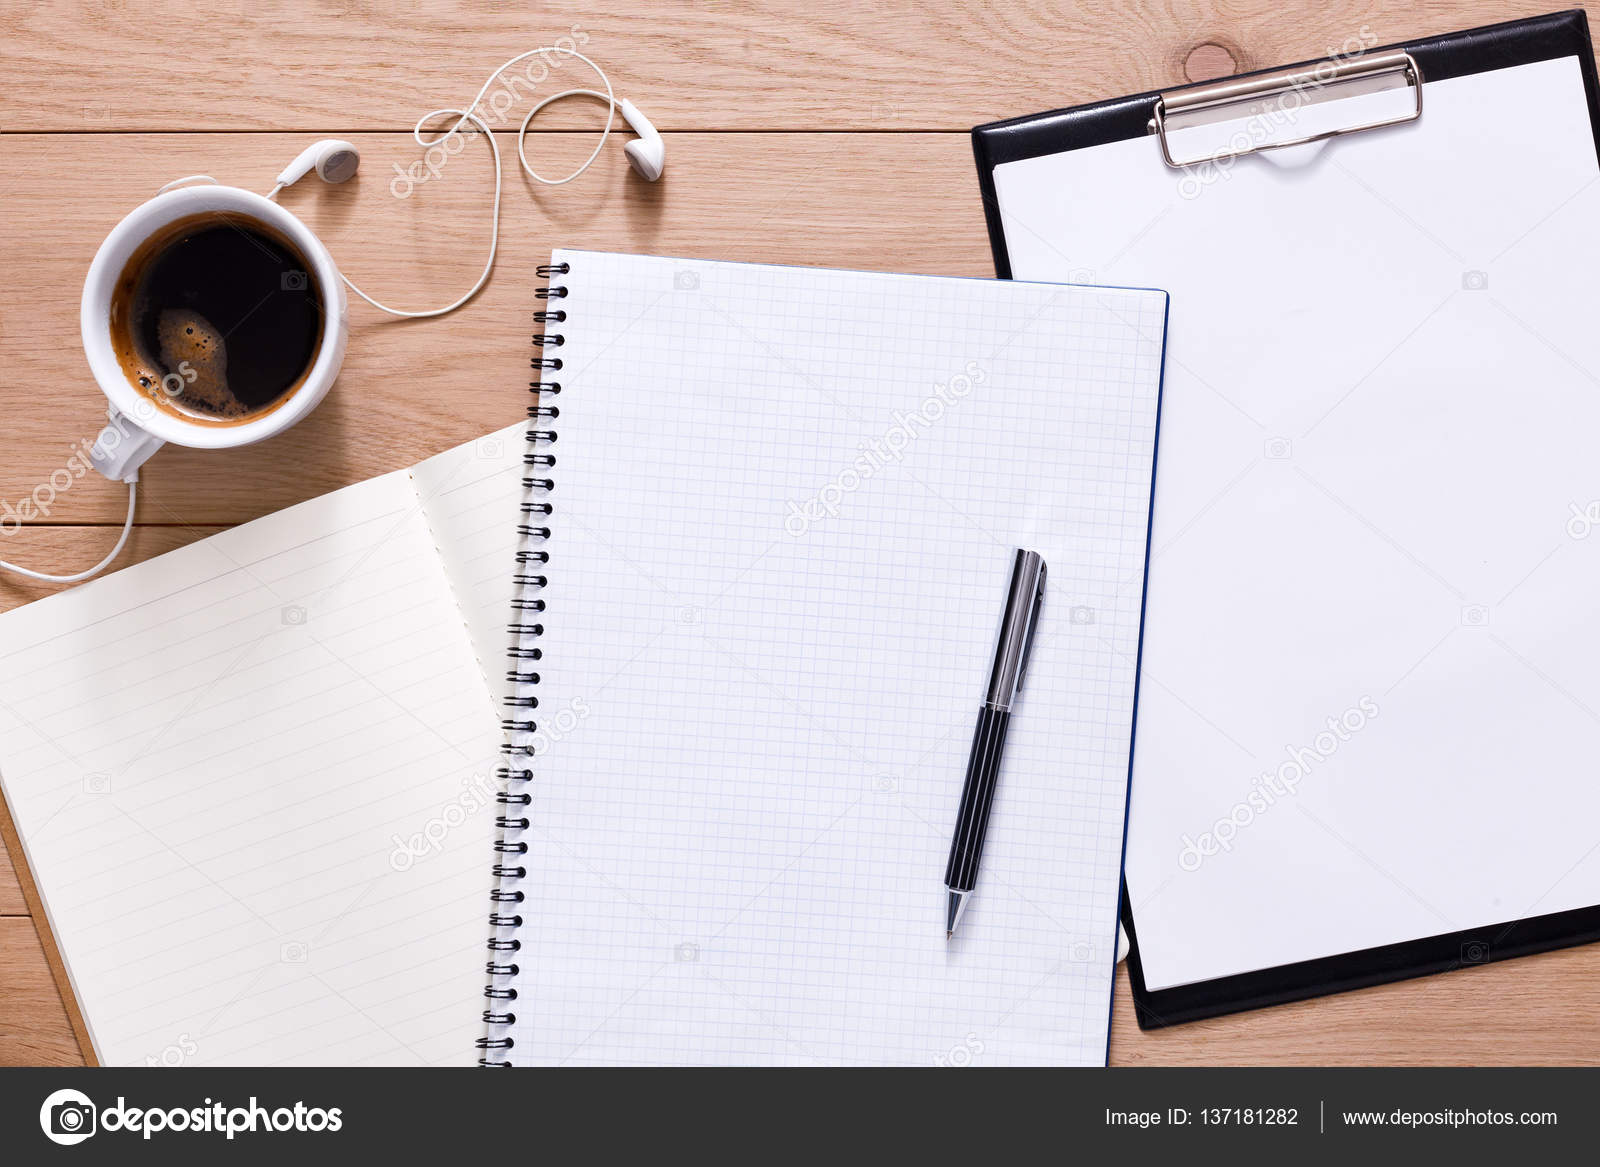 Papers Notepad And Coffee On Wood Background Stock Photo C Milkos 137181282